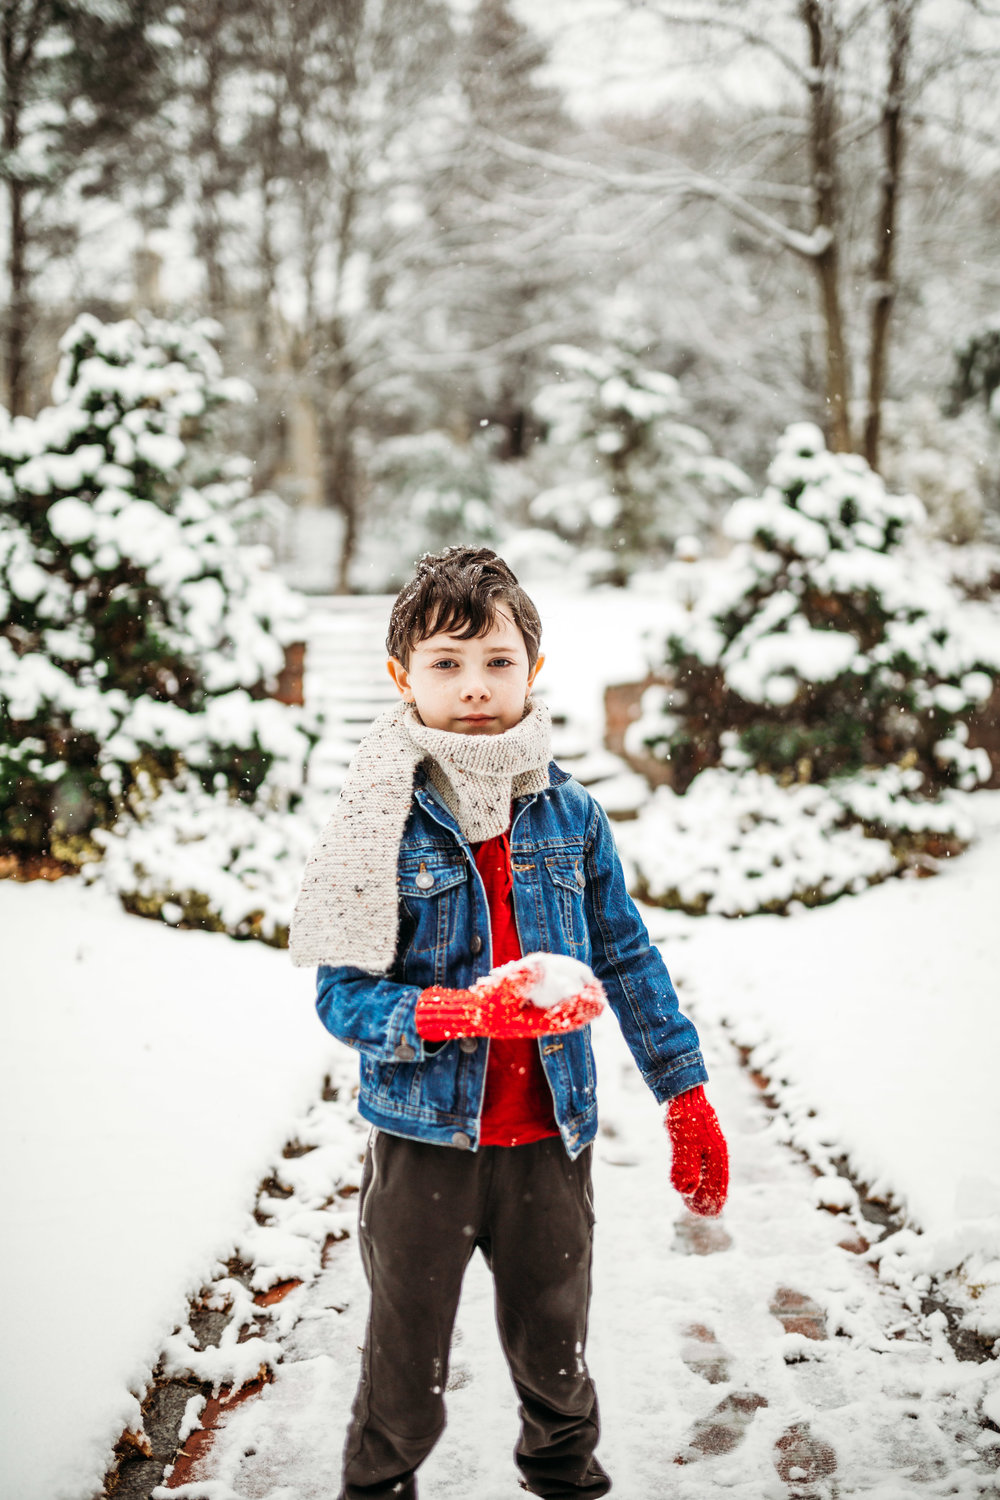 long island child photographer jennifer tippett snow photo shoot-3266.jpg